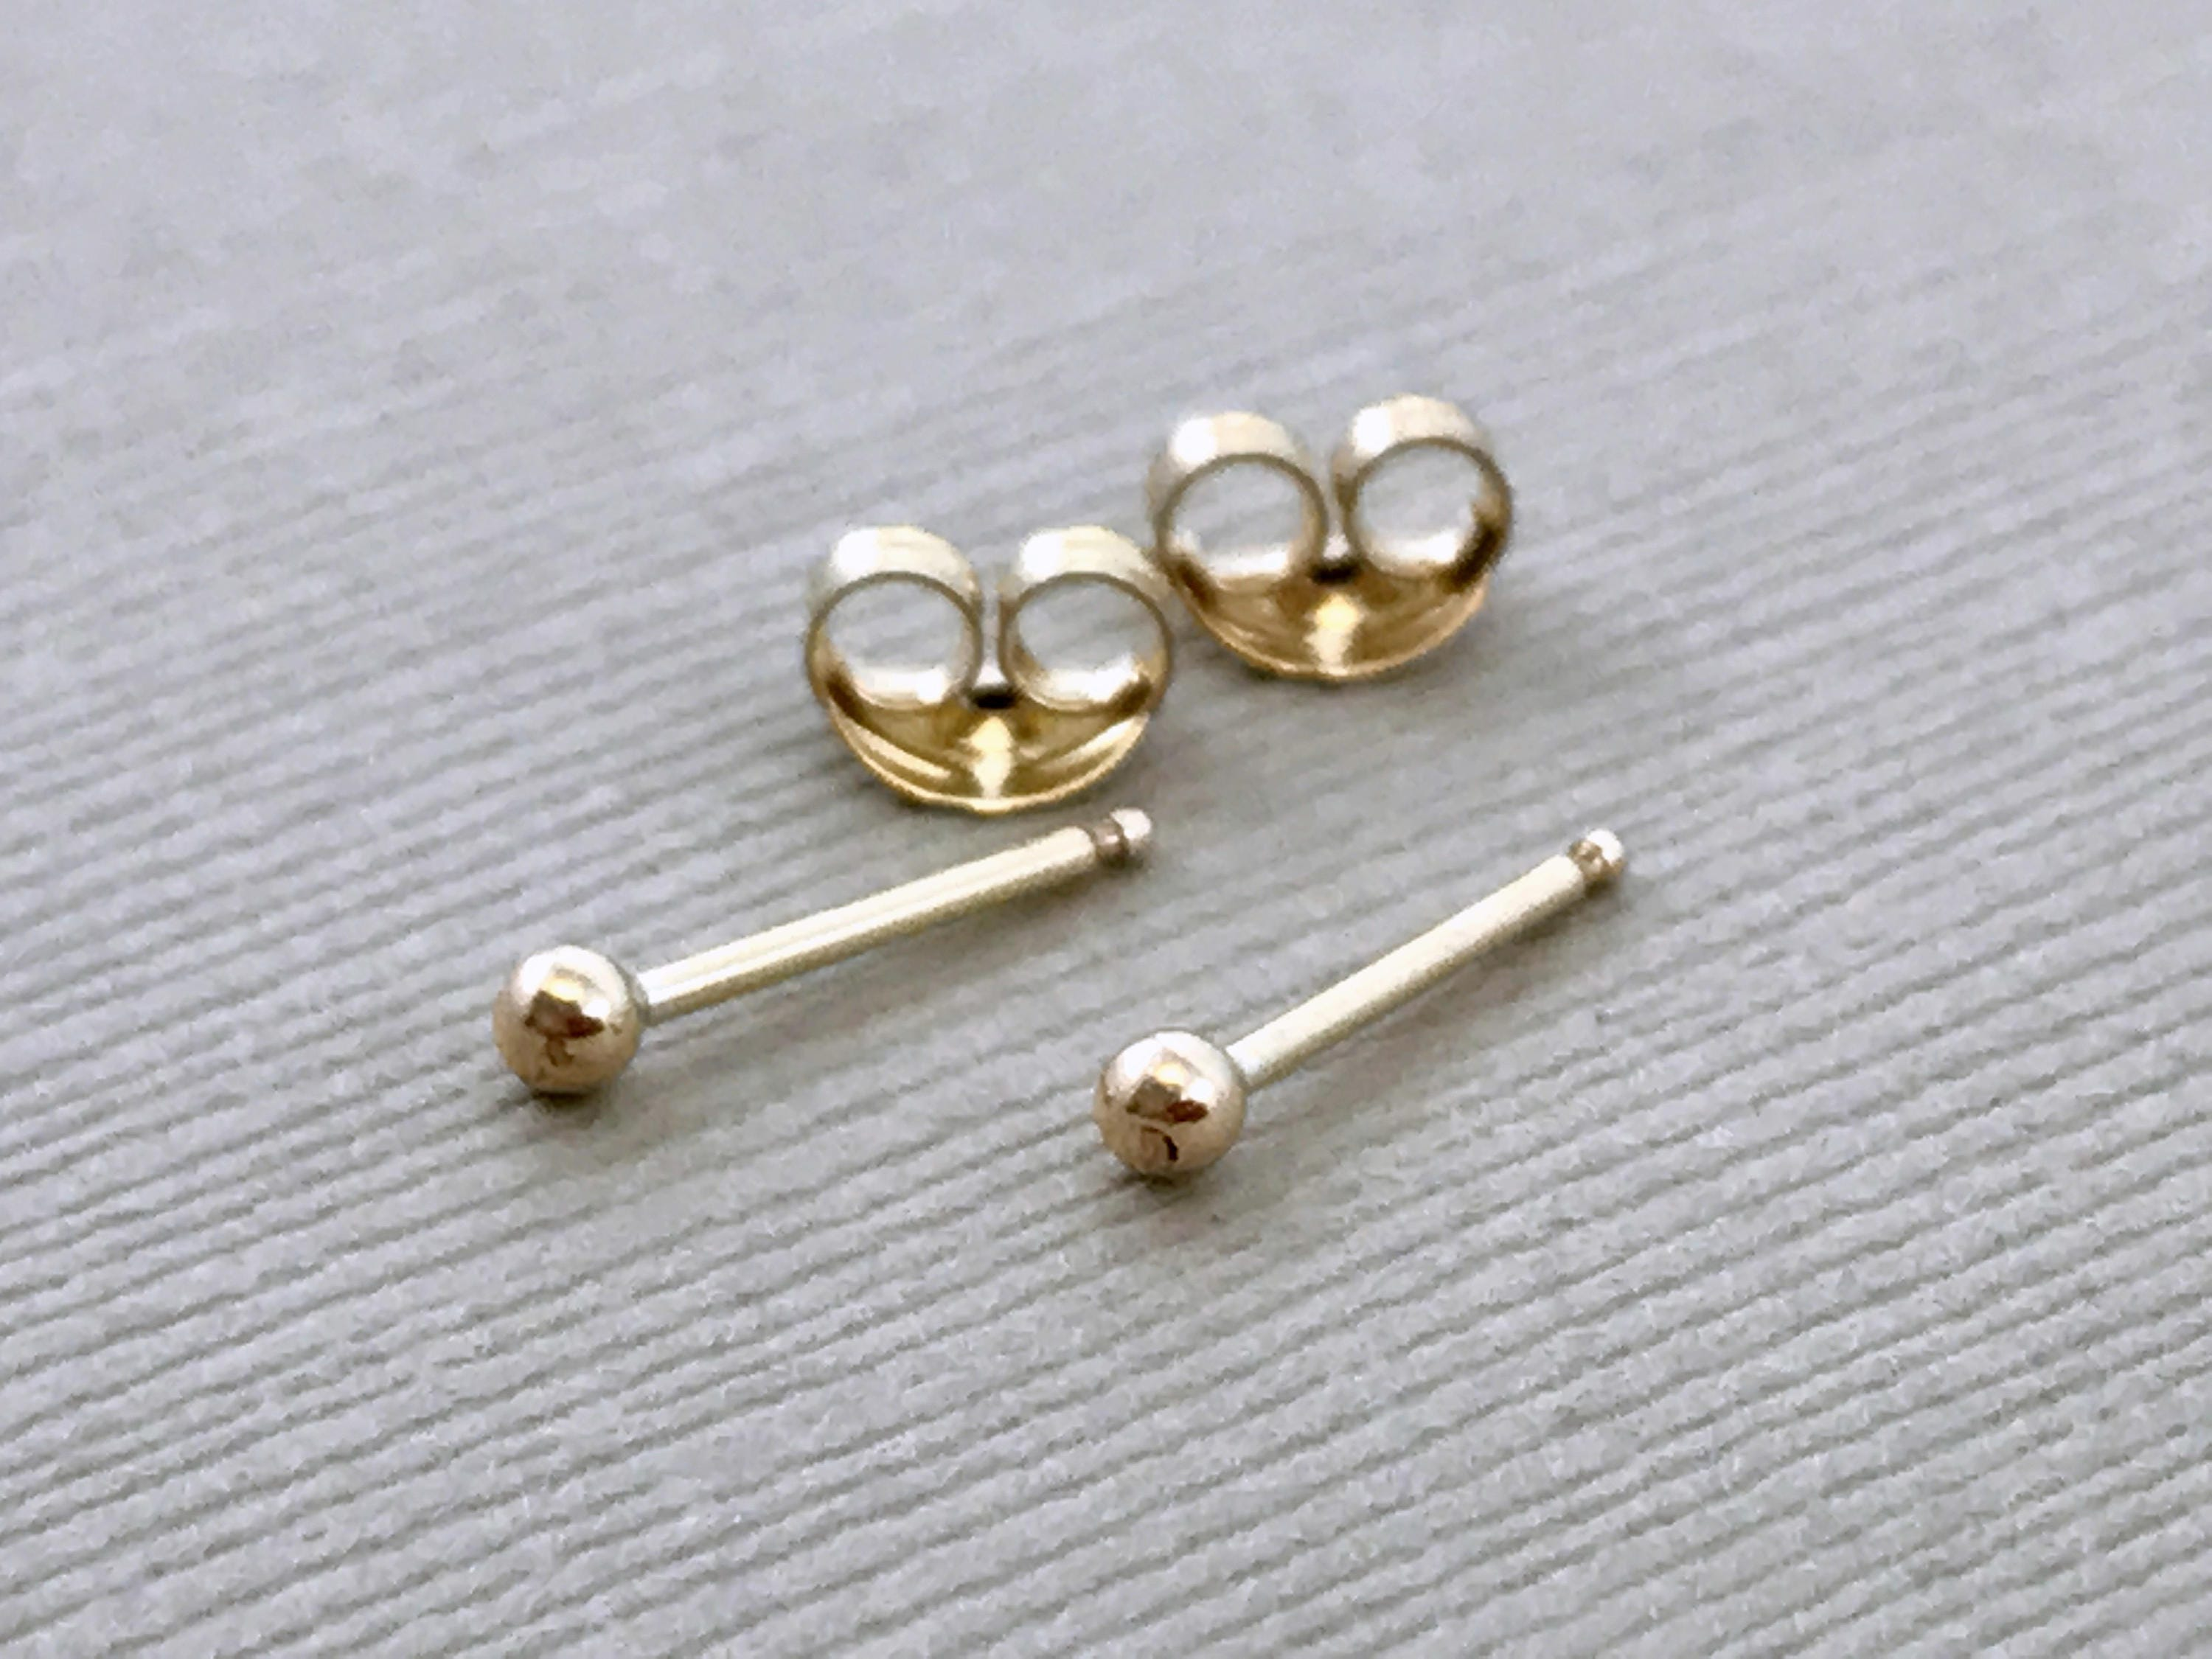 buy stud earrings cool aliexpresscom studs hd l items popular gold for arrival hot new simple